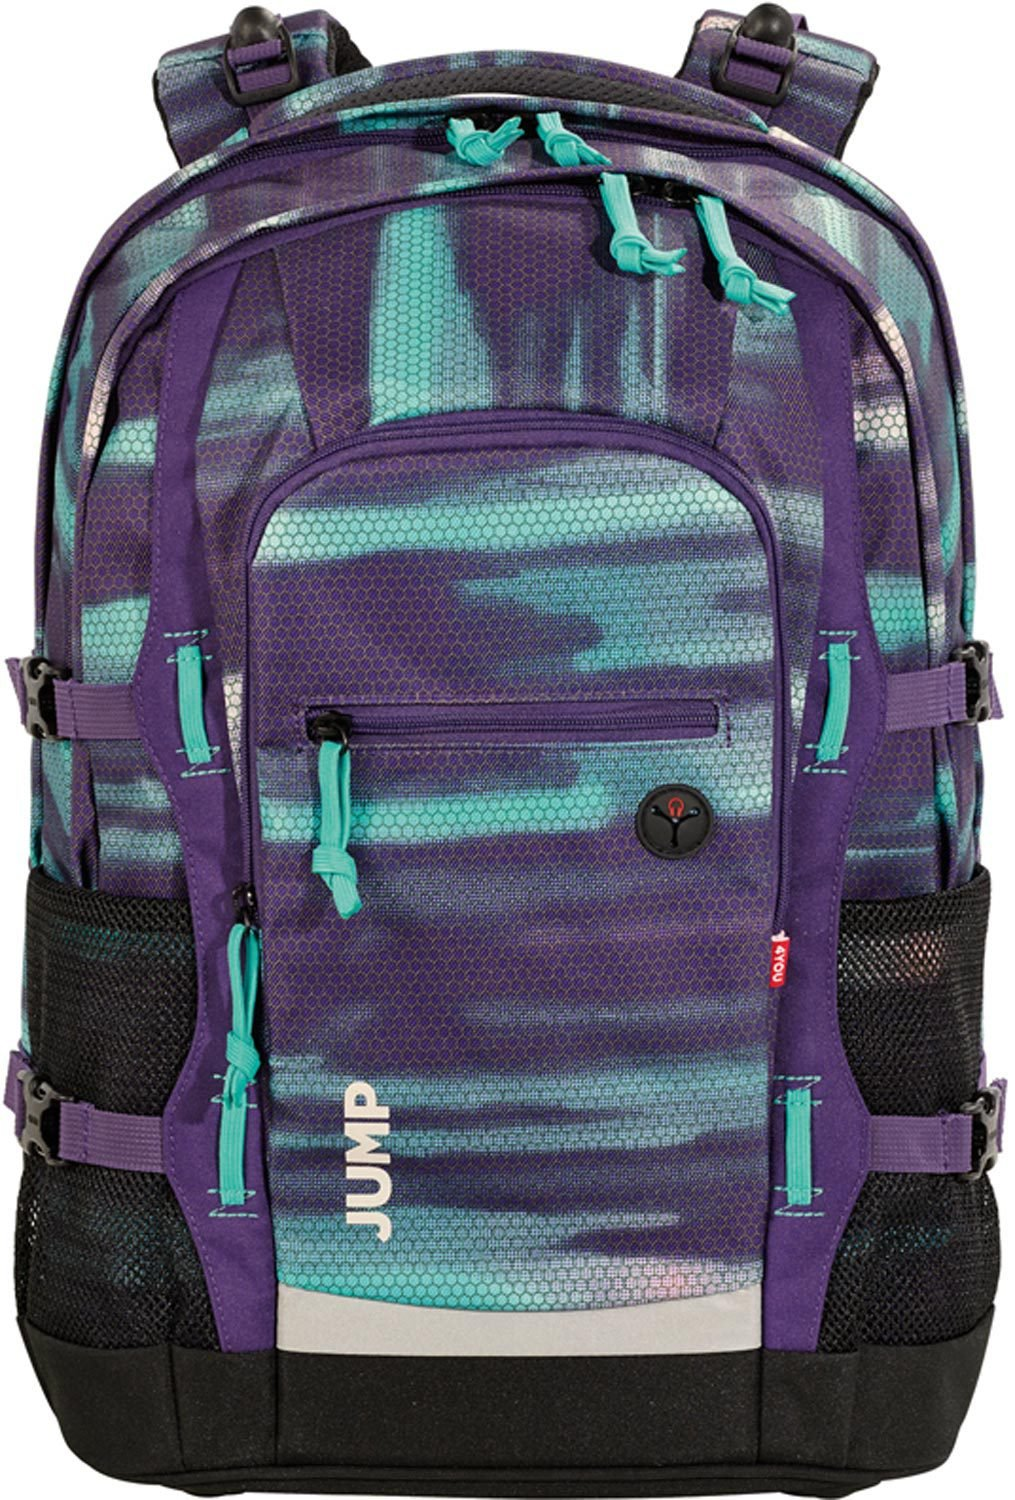 66c66147e6569 4YOU Basic School Rucksack Set 3 Pieces Jump 842 Shades Purple 842 Shades  Purple  Amazon.co.uk  Office Products